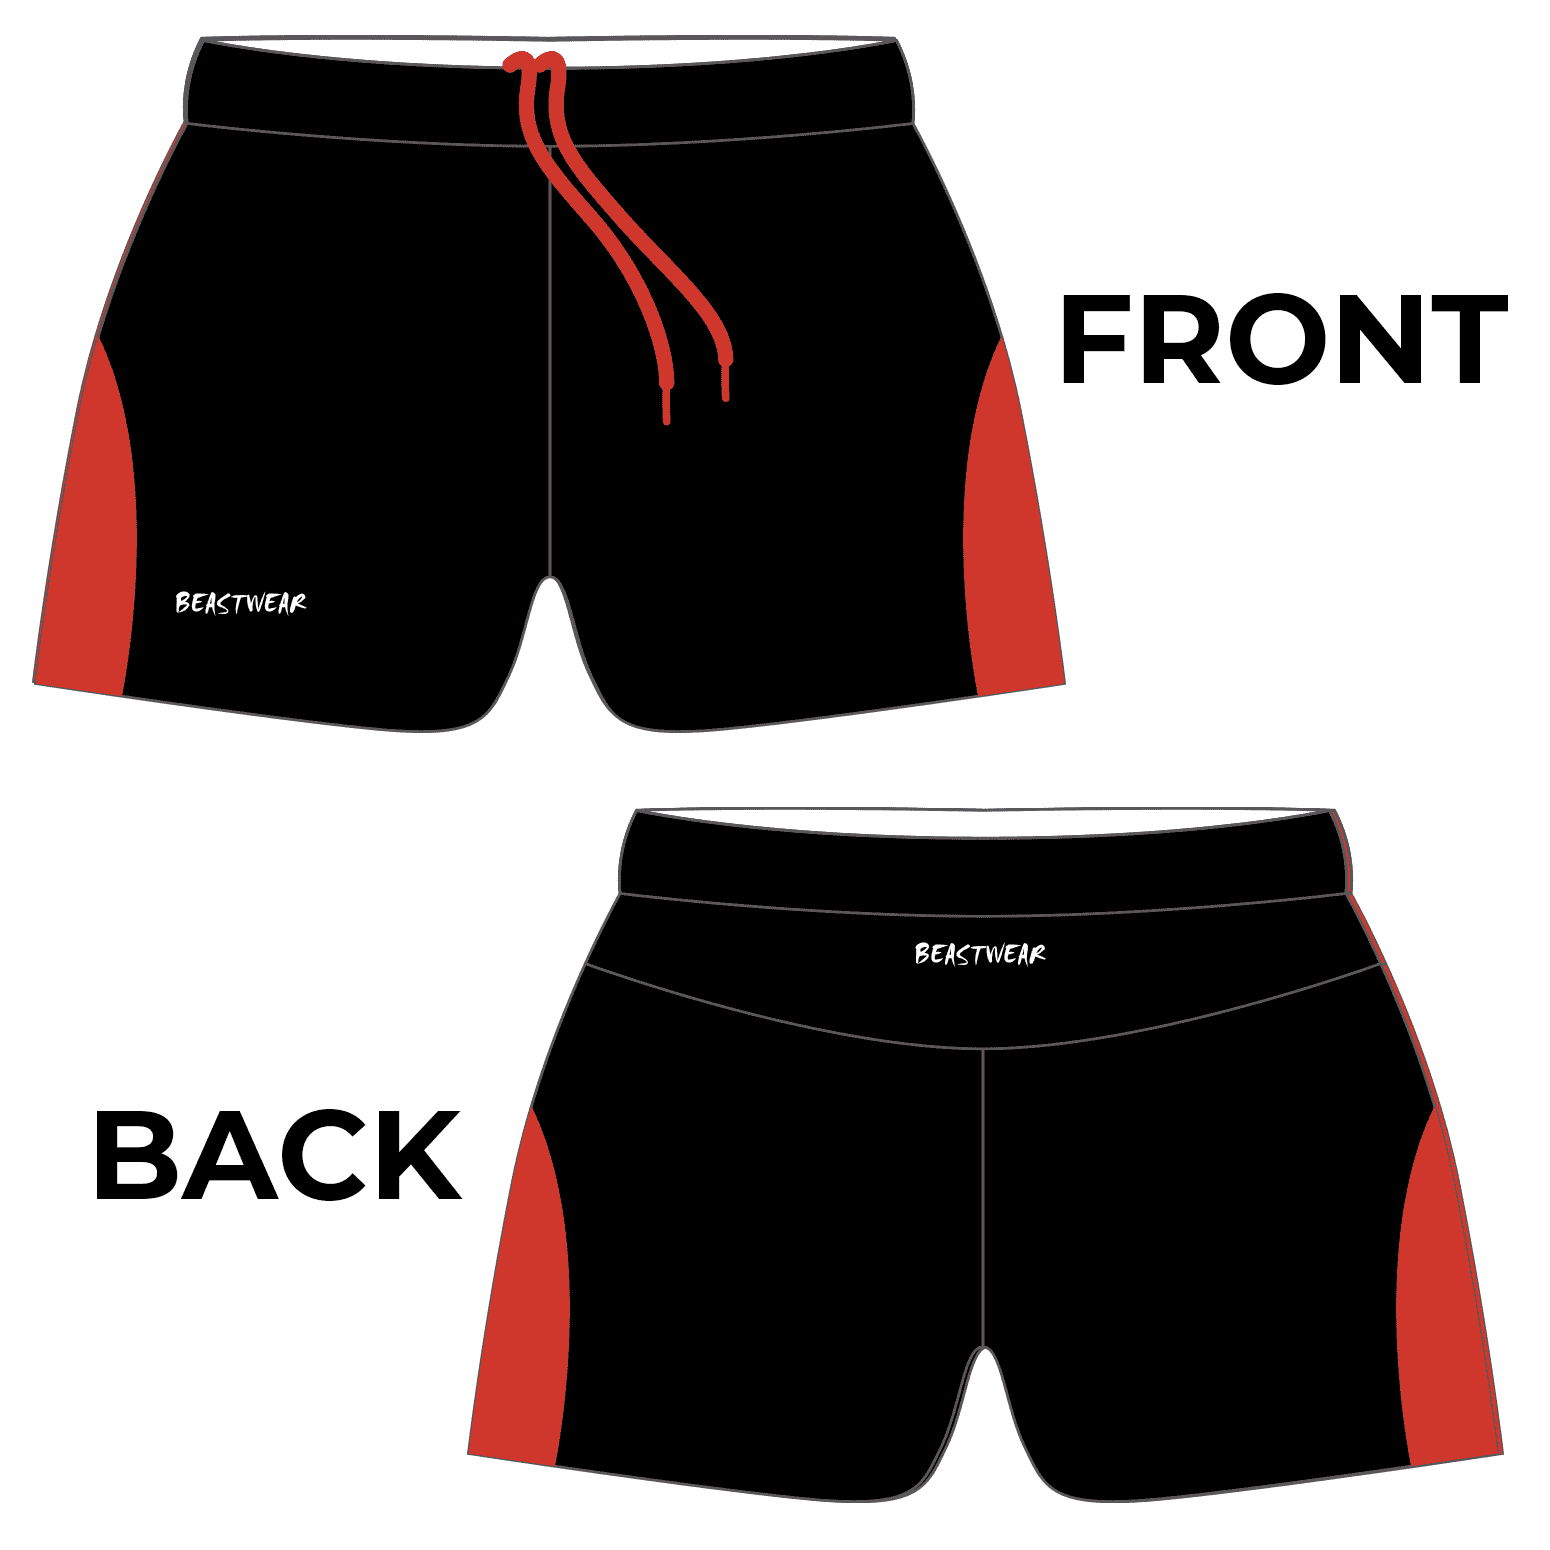 Limited Edition Shorts (Design 3) - Warby Motorsports World Record